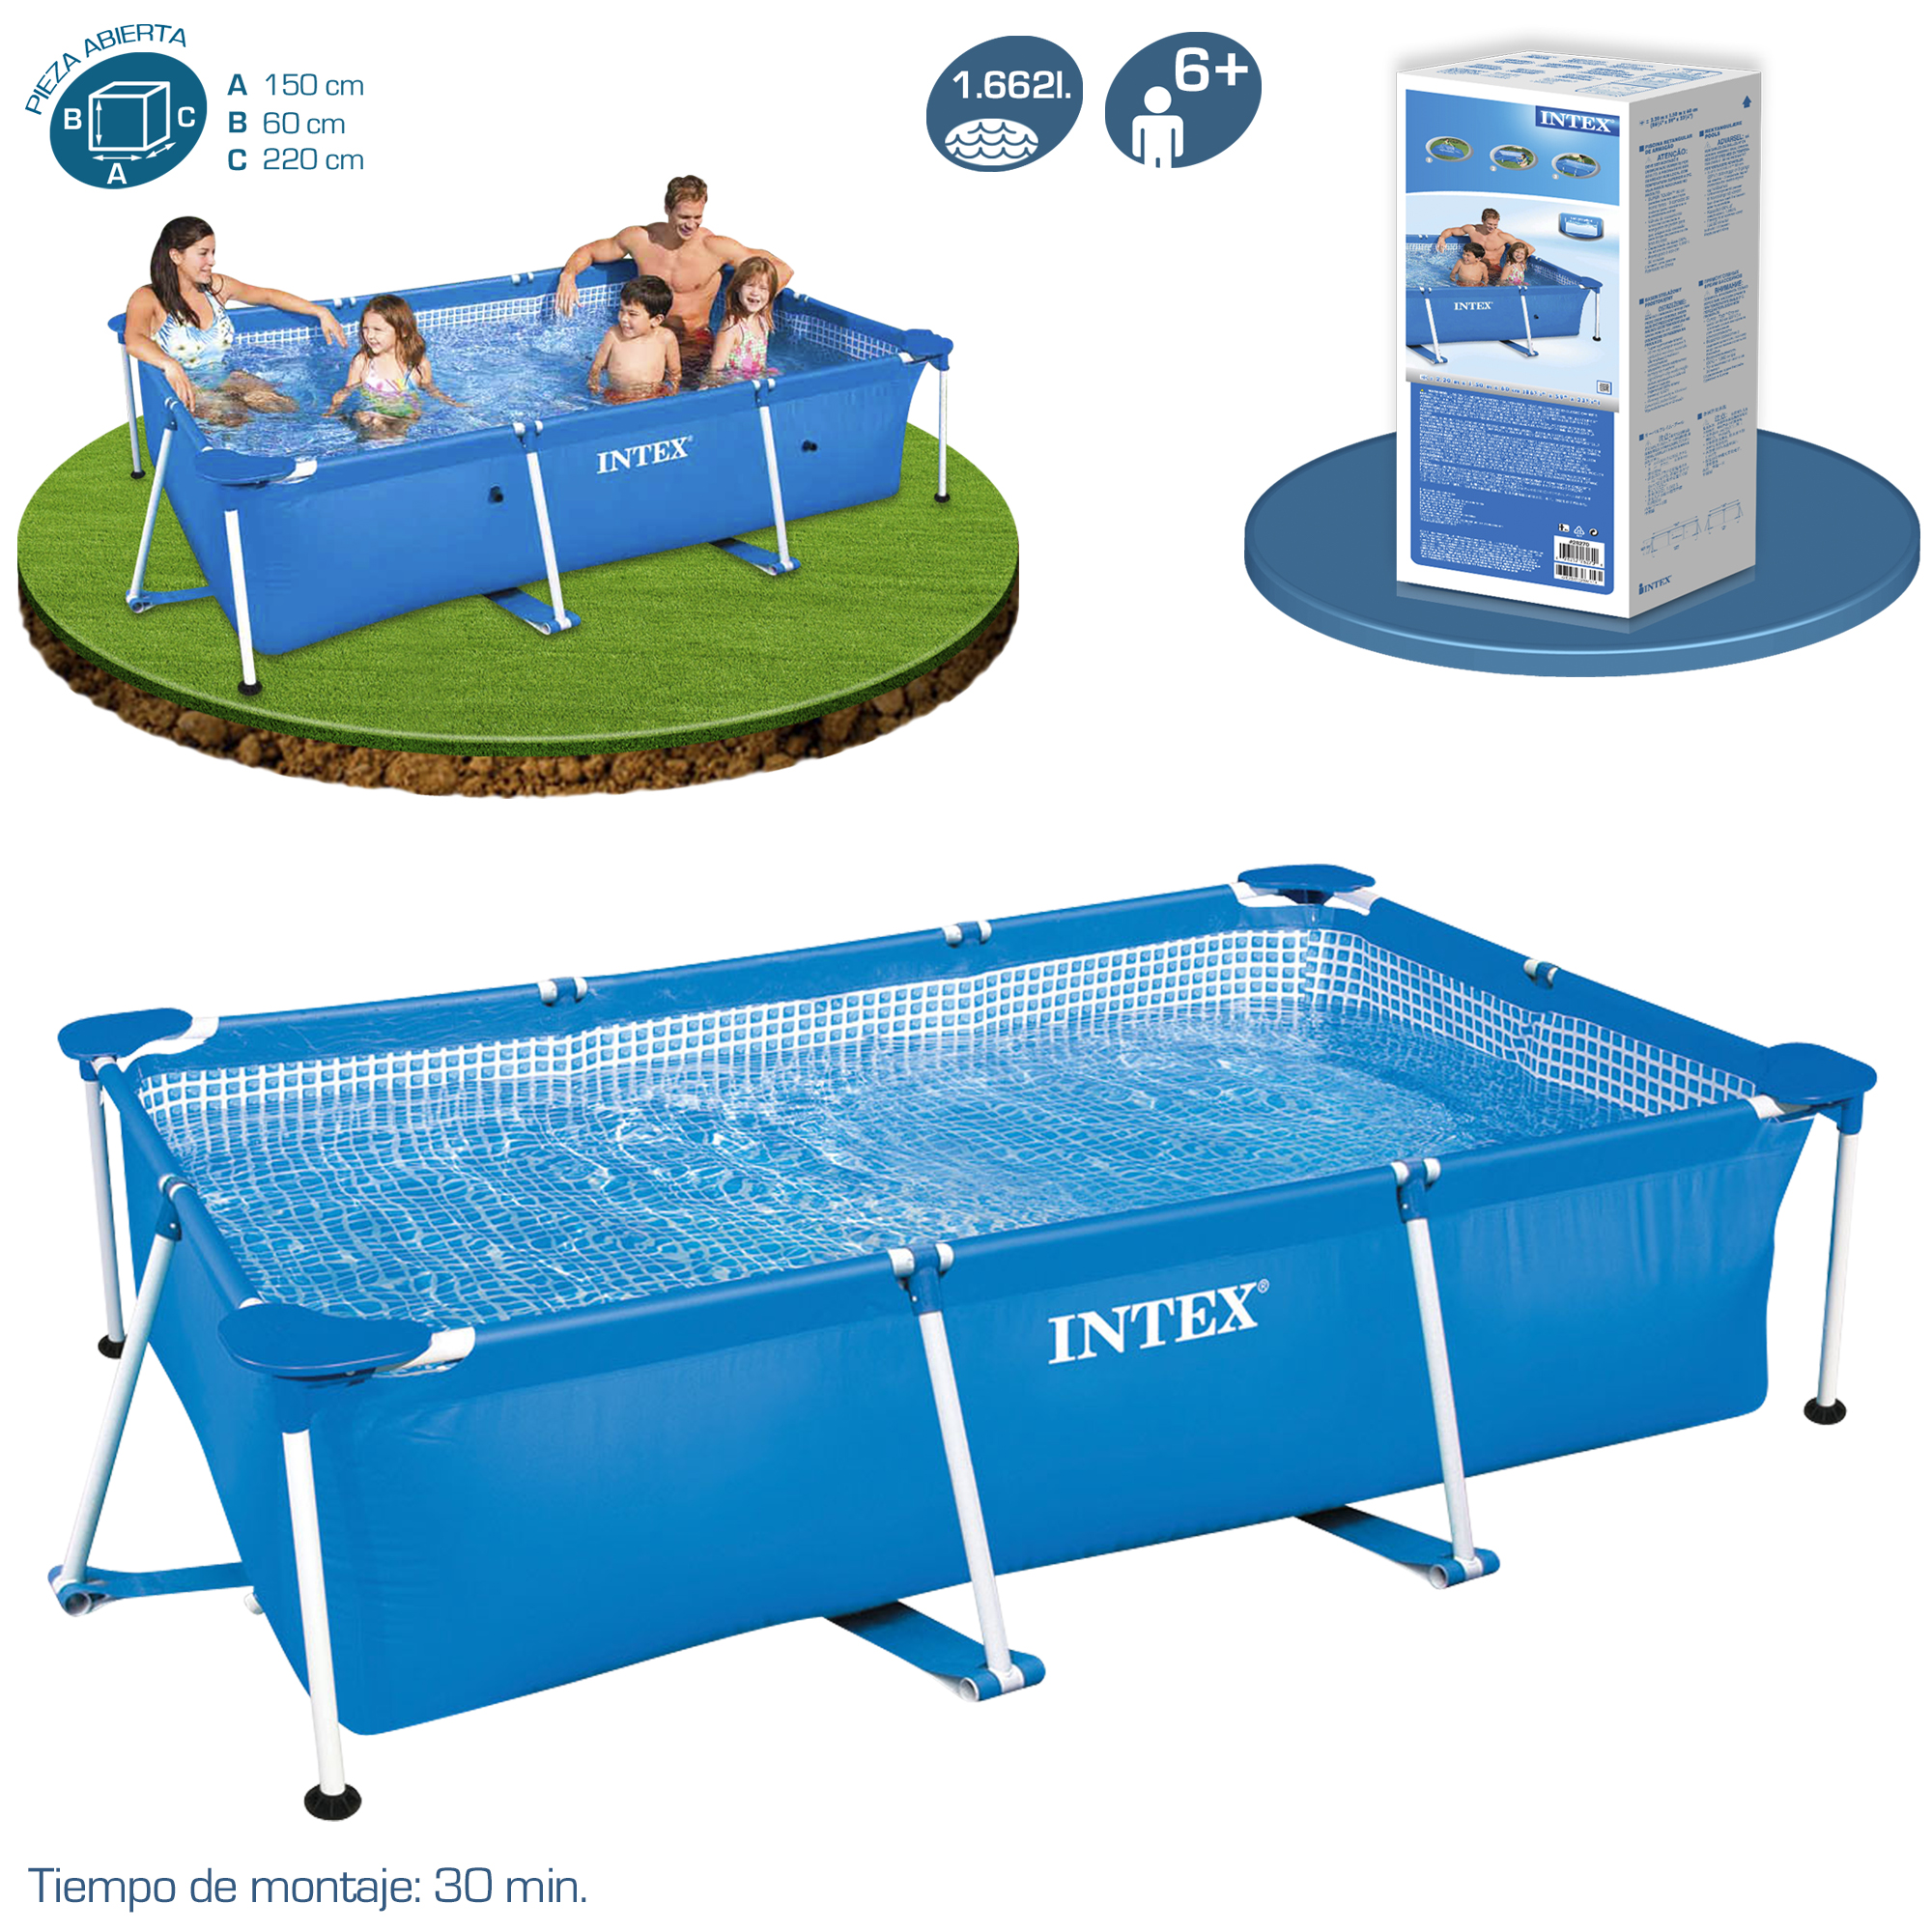 Piscina intex small rectangular frame piscinas desmontables for Piscina mairena del alcor 2017